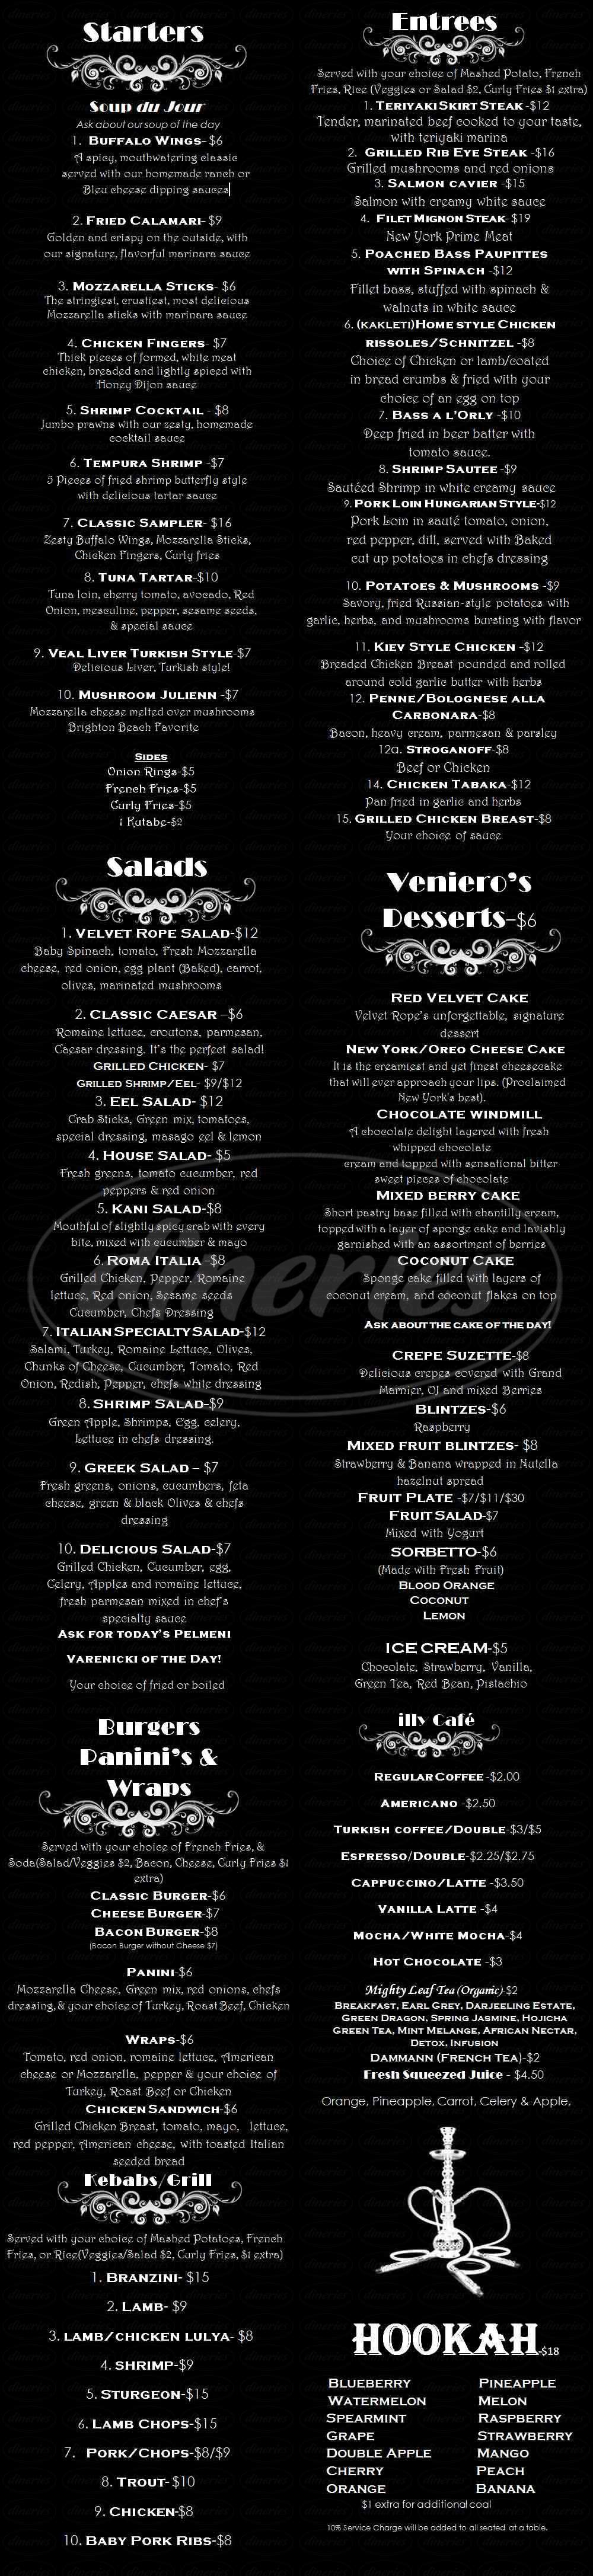 menu for The Velvet Rope Lounge